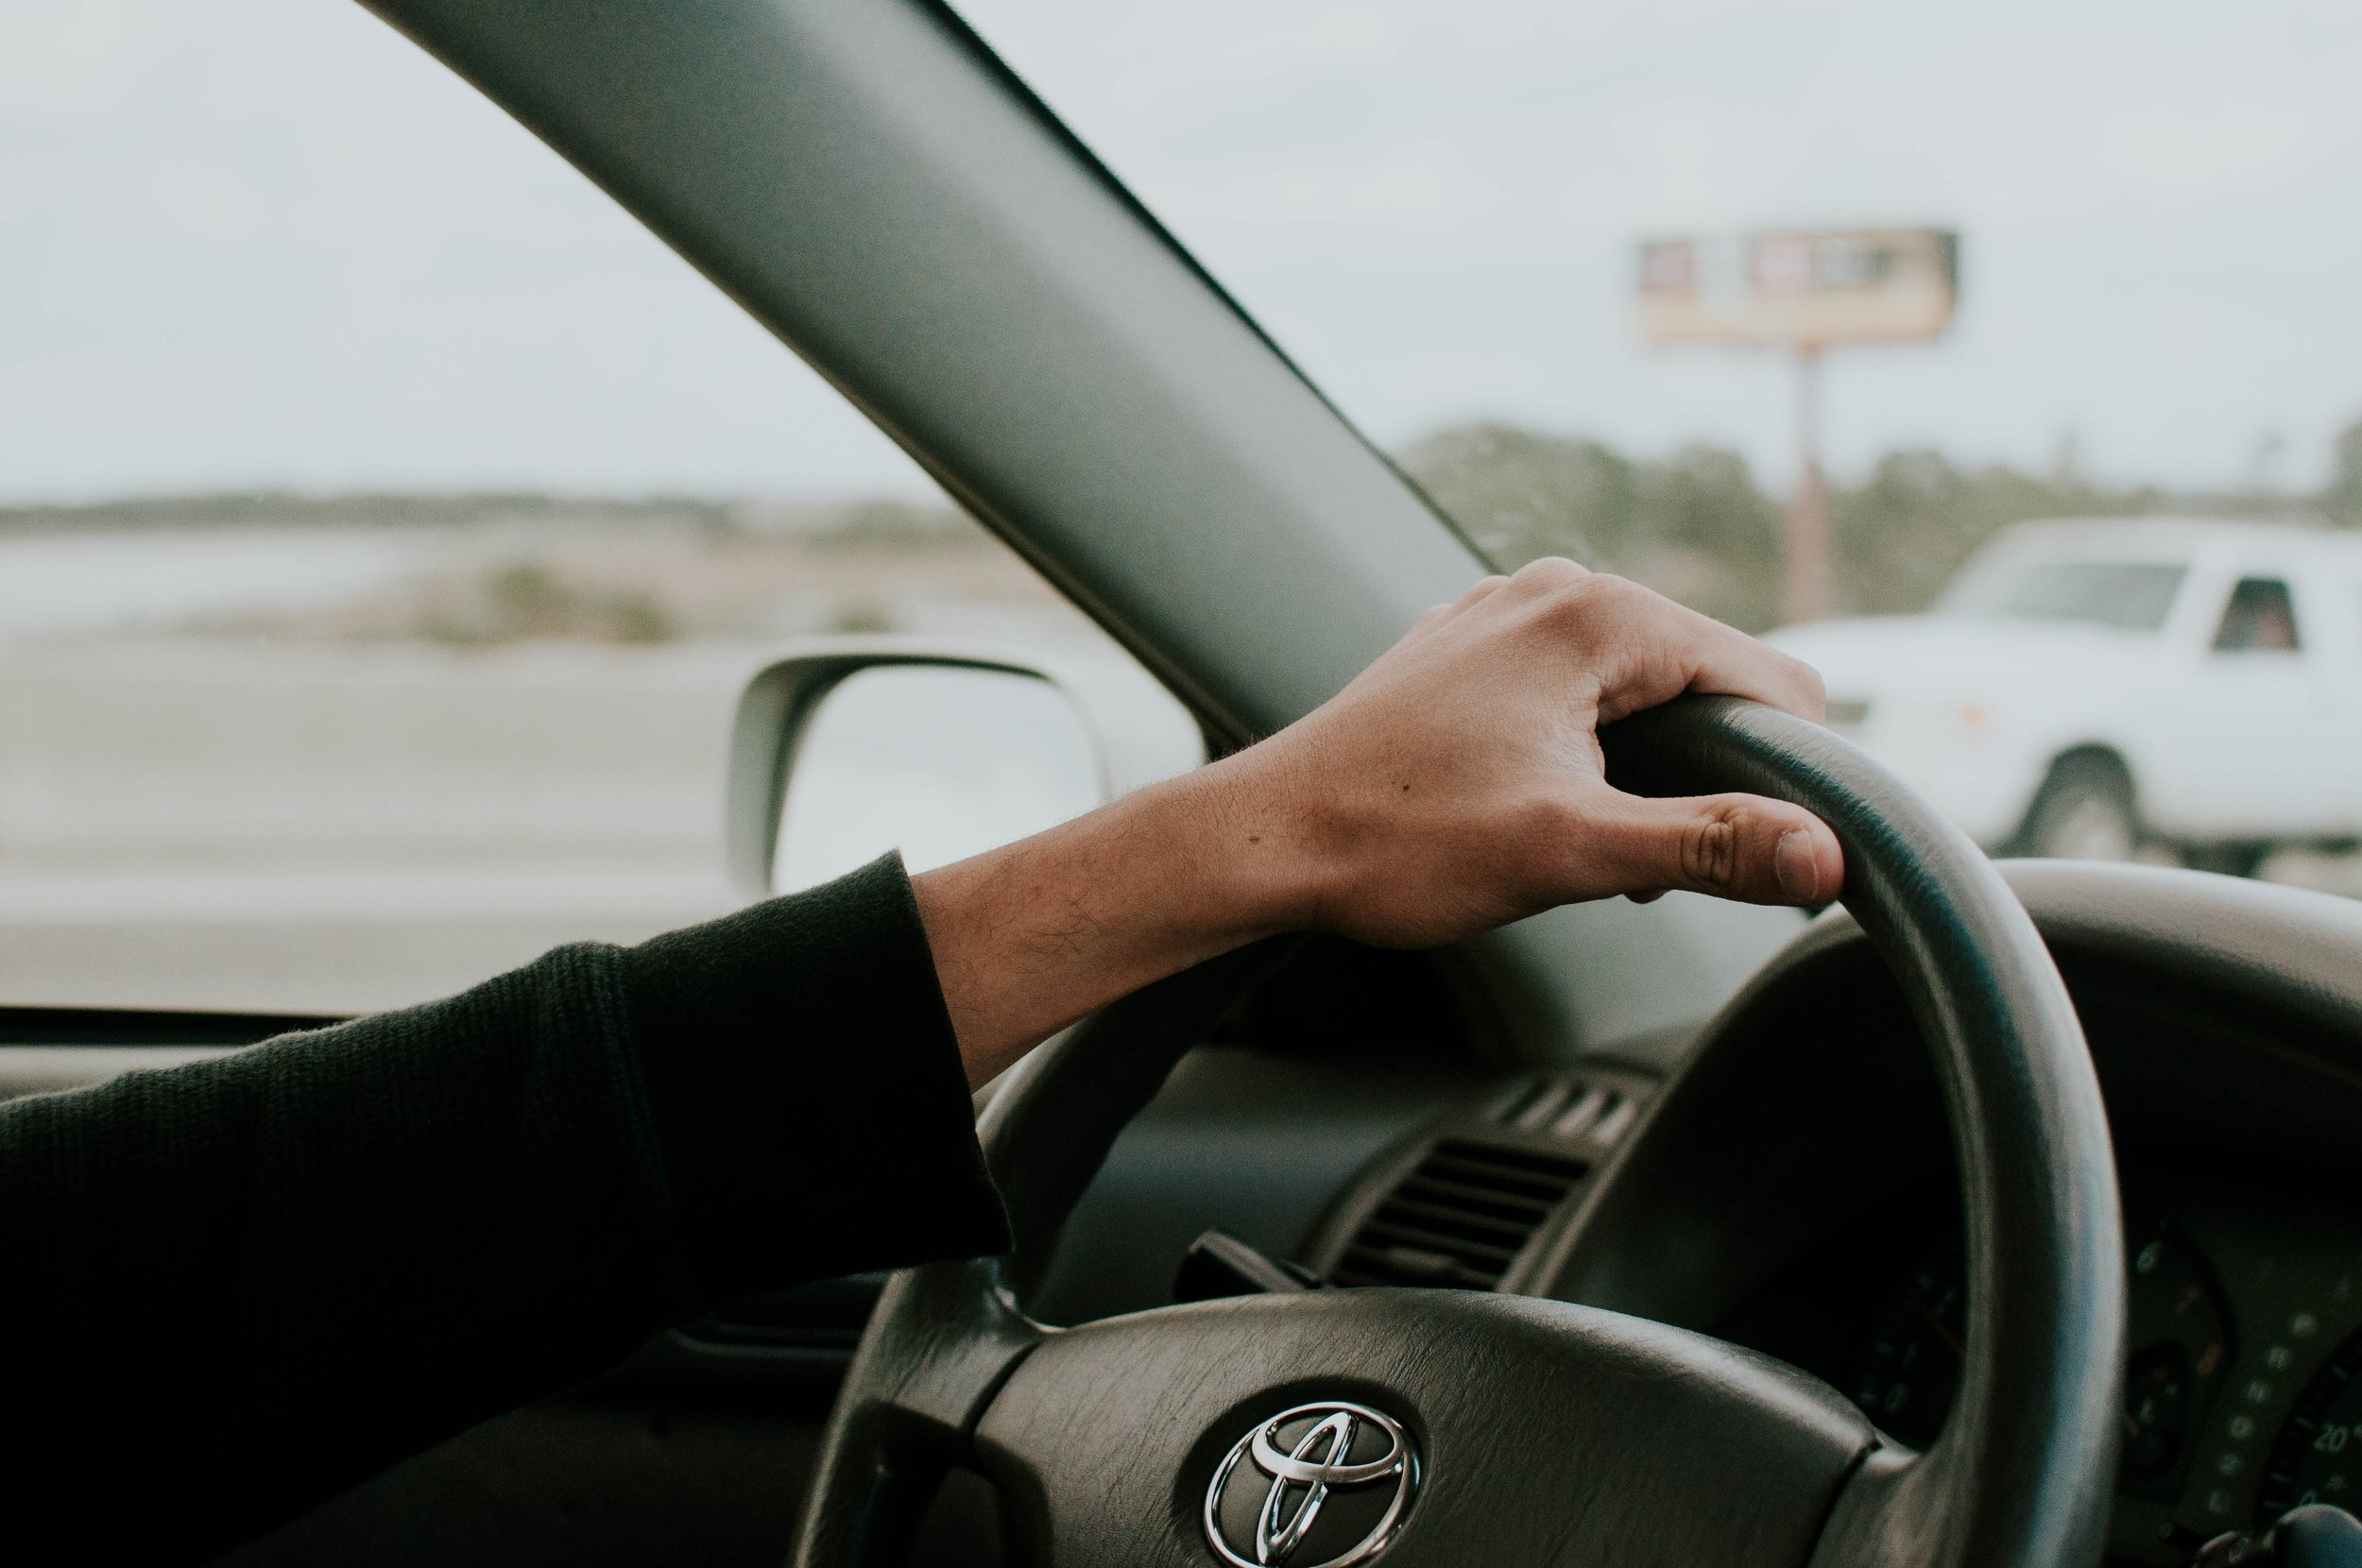 drowsy driving or driving while sleepy is dangerous